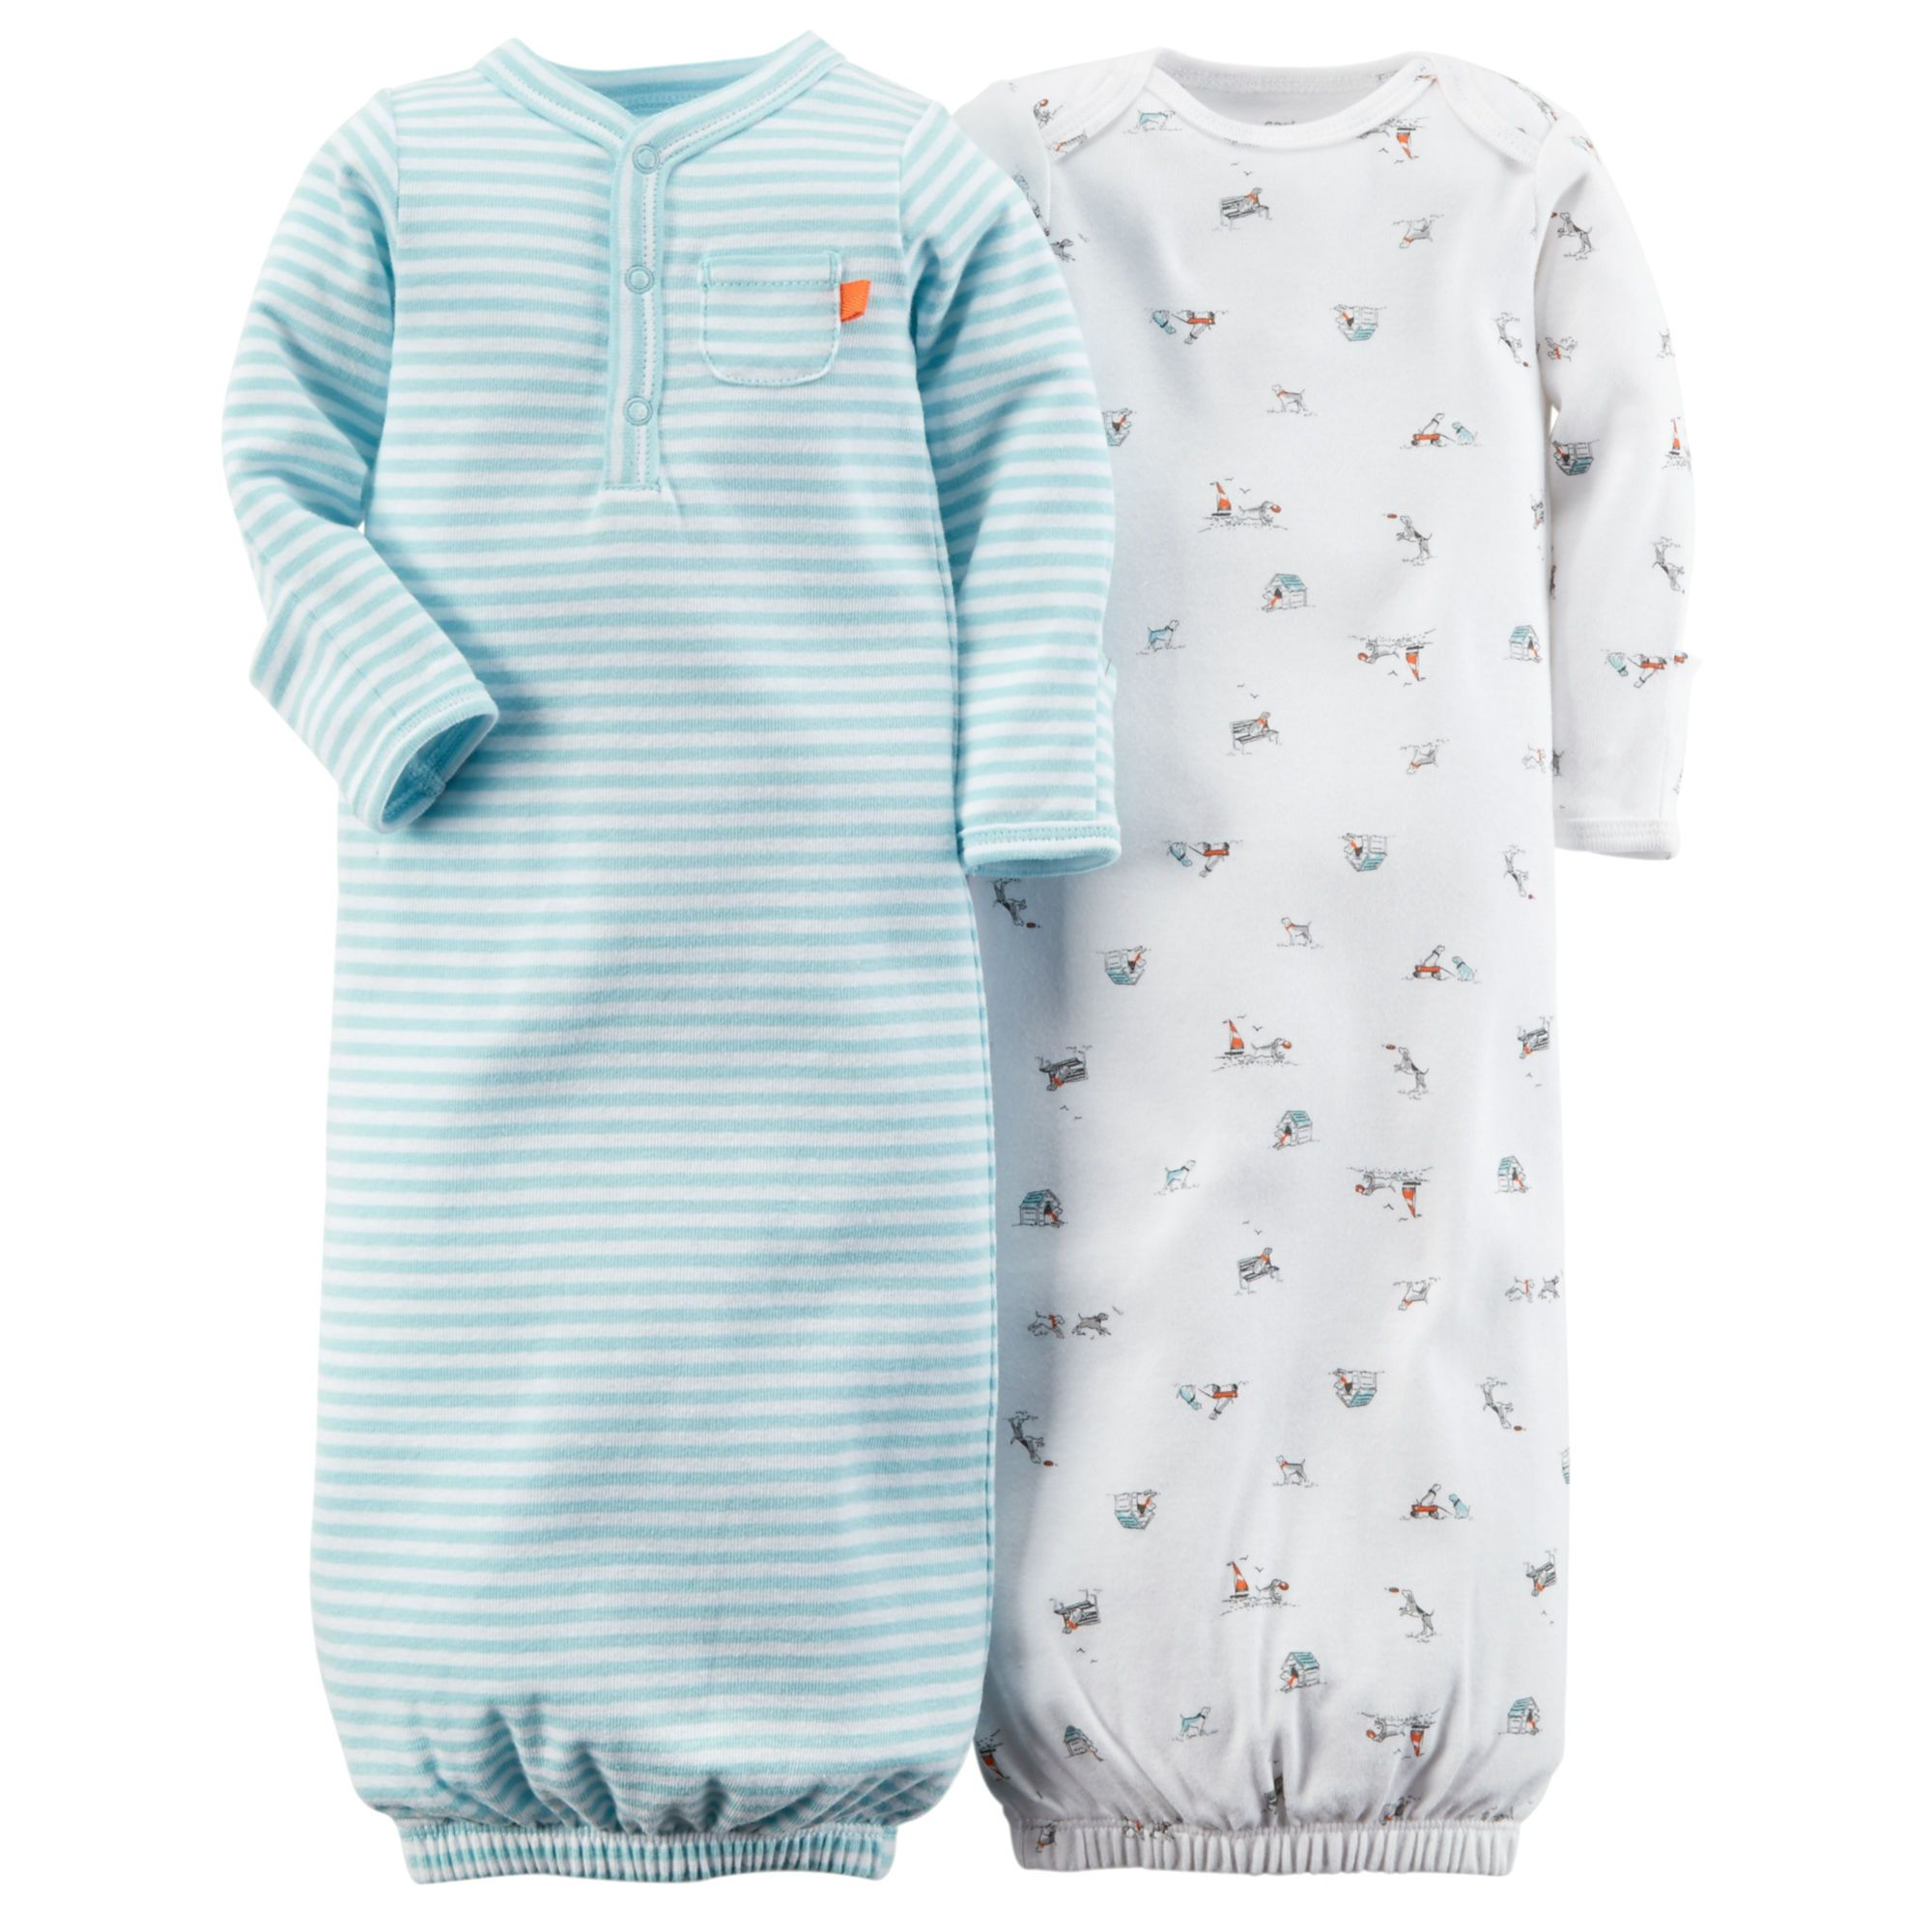 Baby Boy 2-Pack Sleeper Gowns | Carters.com | Future babyboy ...